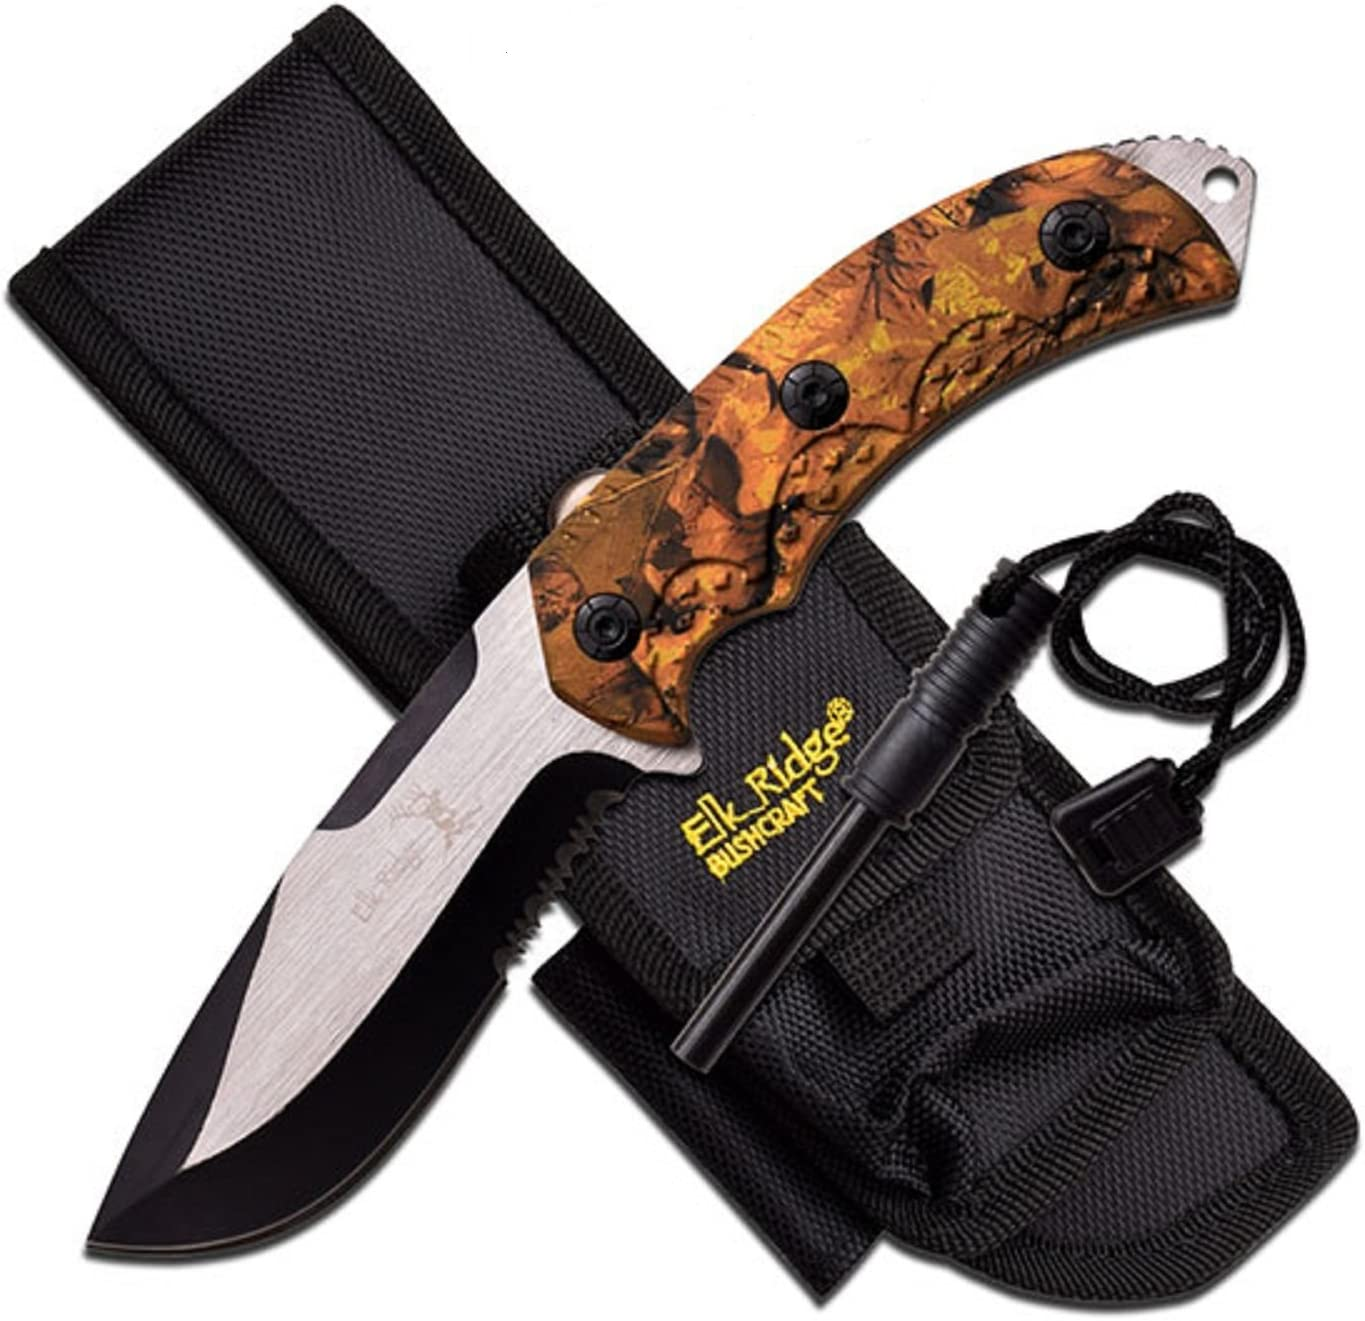 Elk Ridge 4.25 Blade-Jungle Camo Handle Fixed Blade Knife